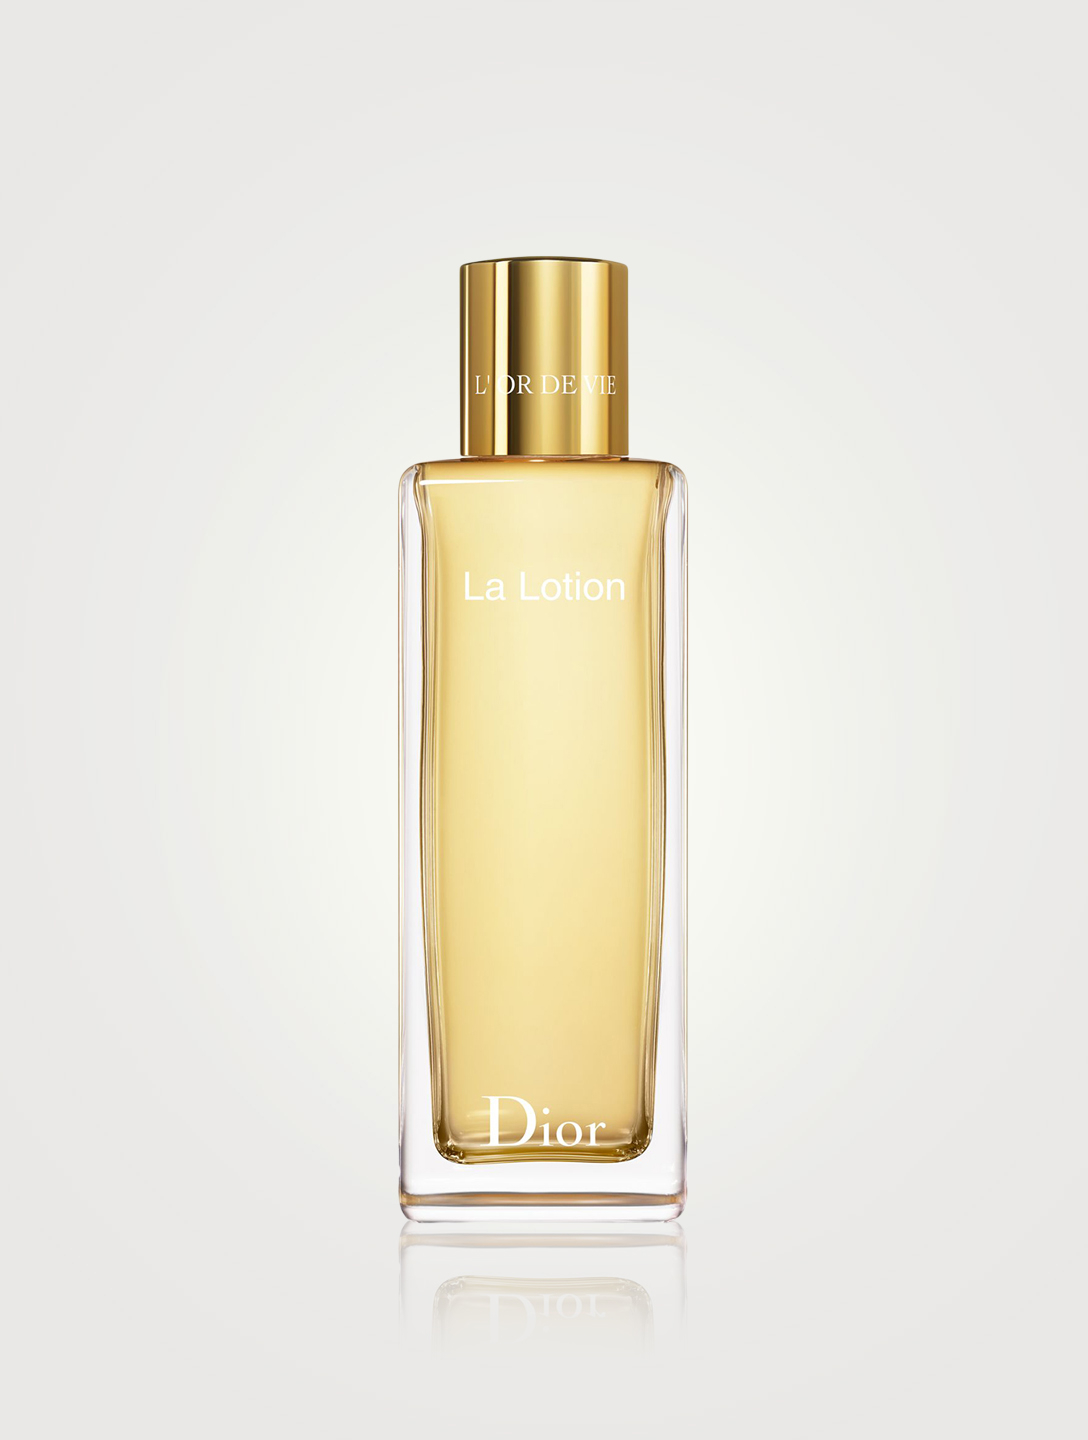 DIOR L'Or de Vie La Lotion Beauty